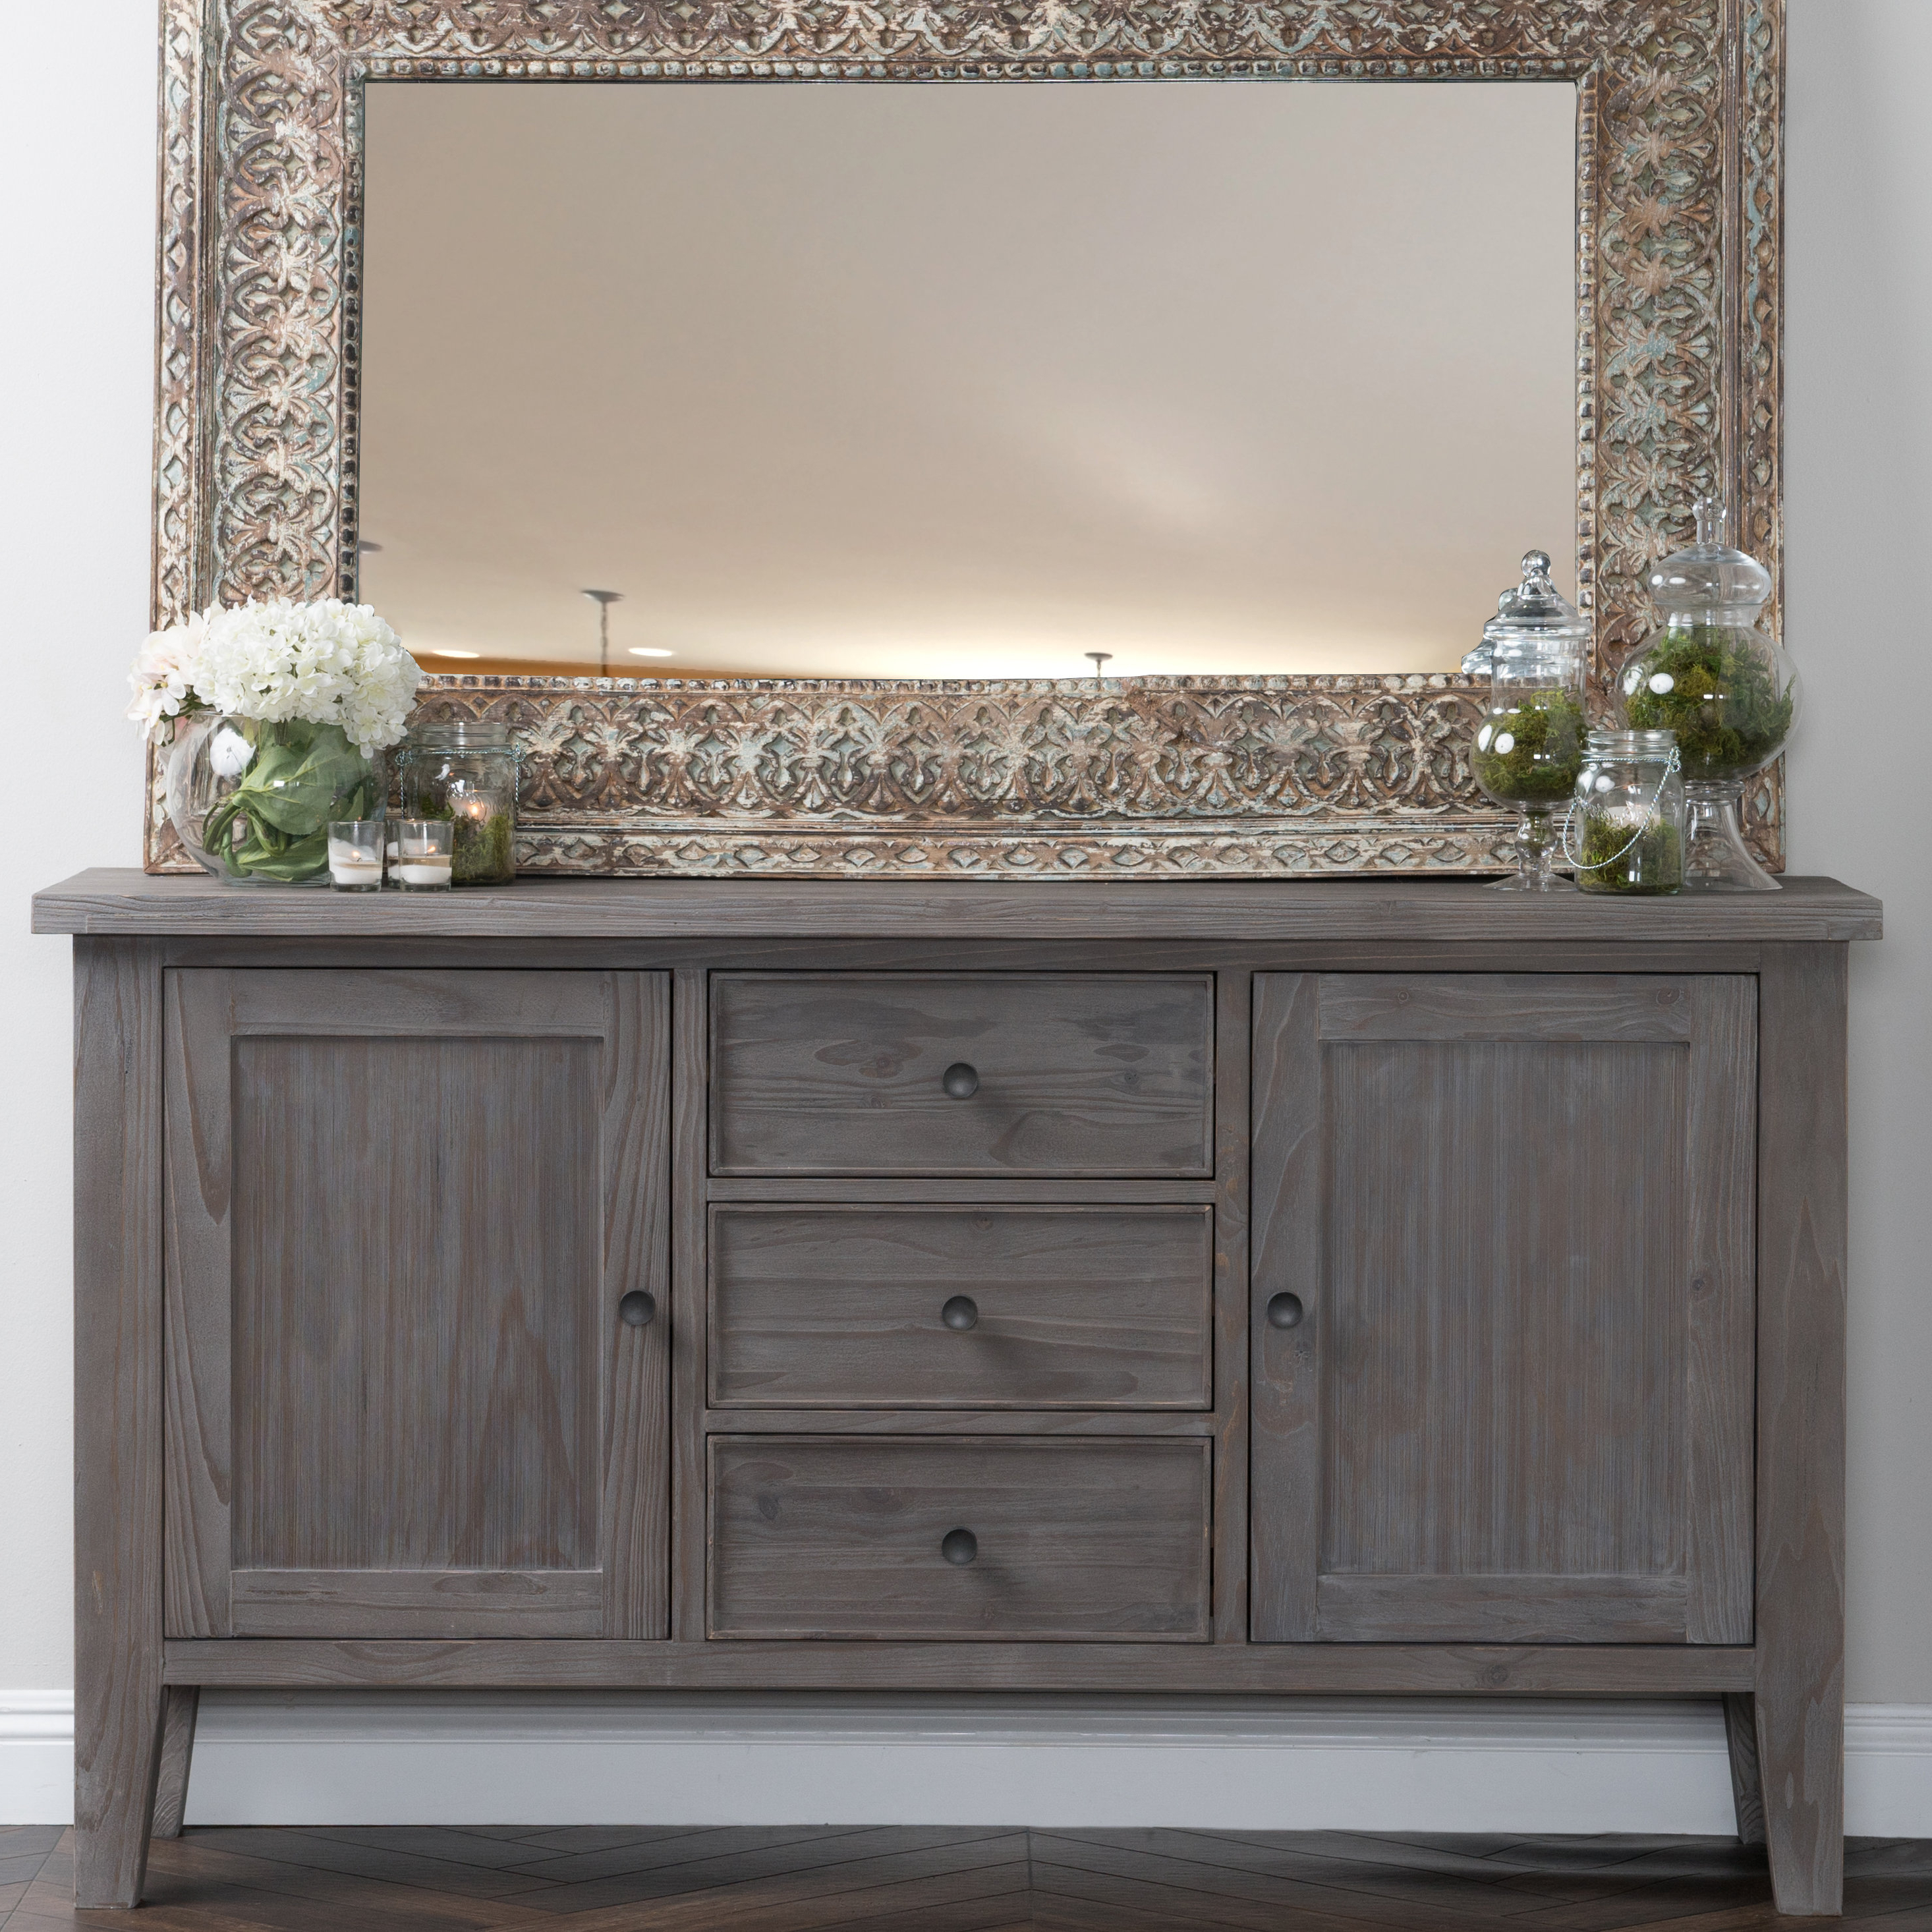 Echo Sideboard Within Deville Russelle Sideboards (Gallery 13 of 20)